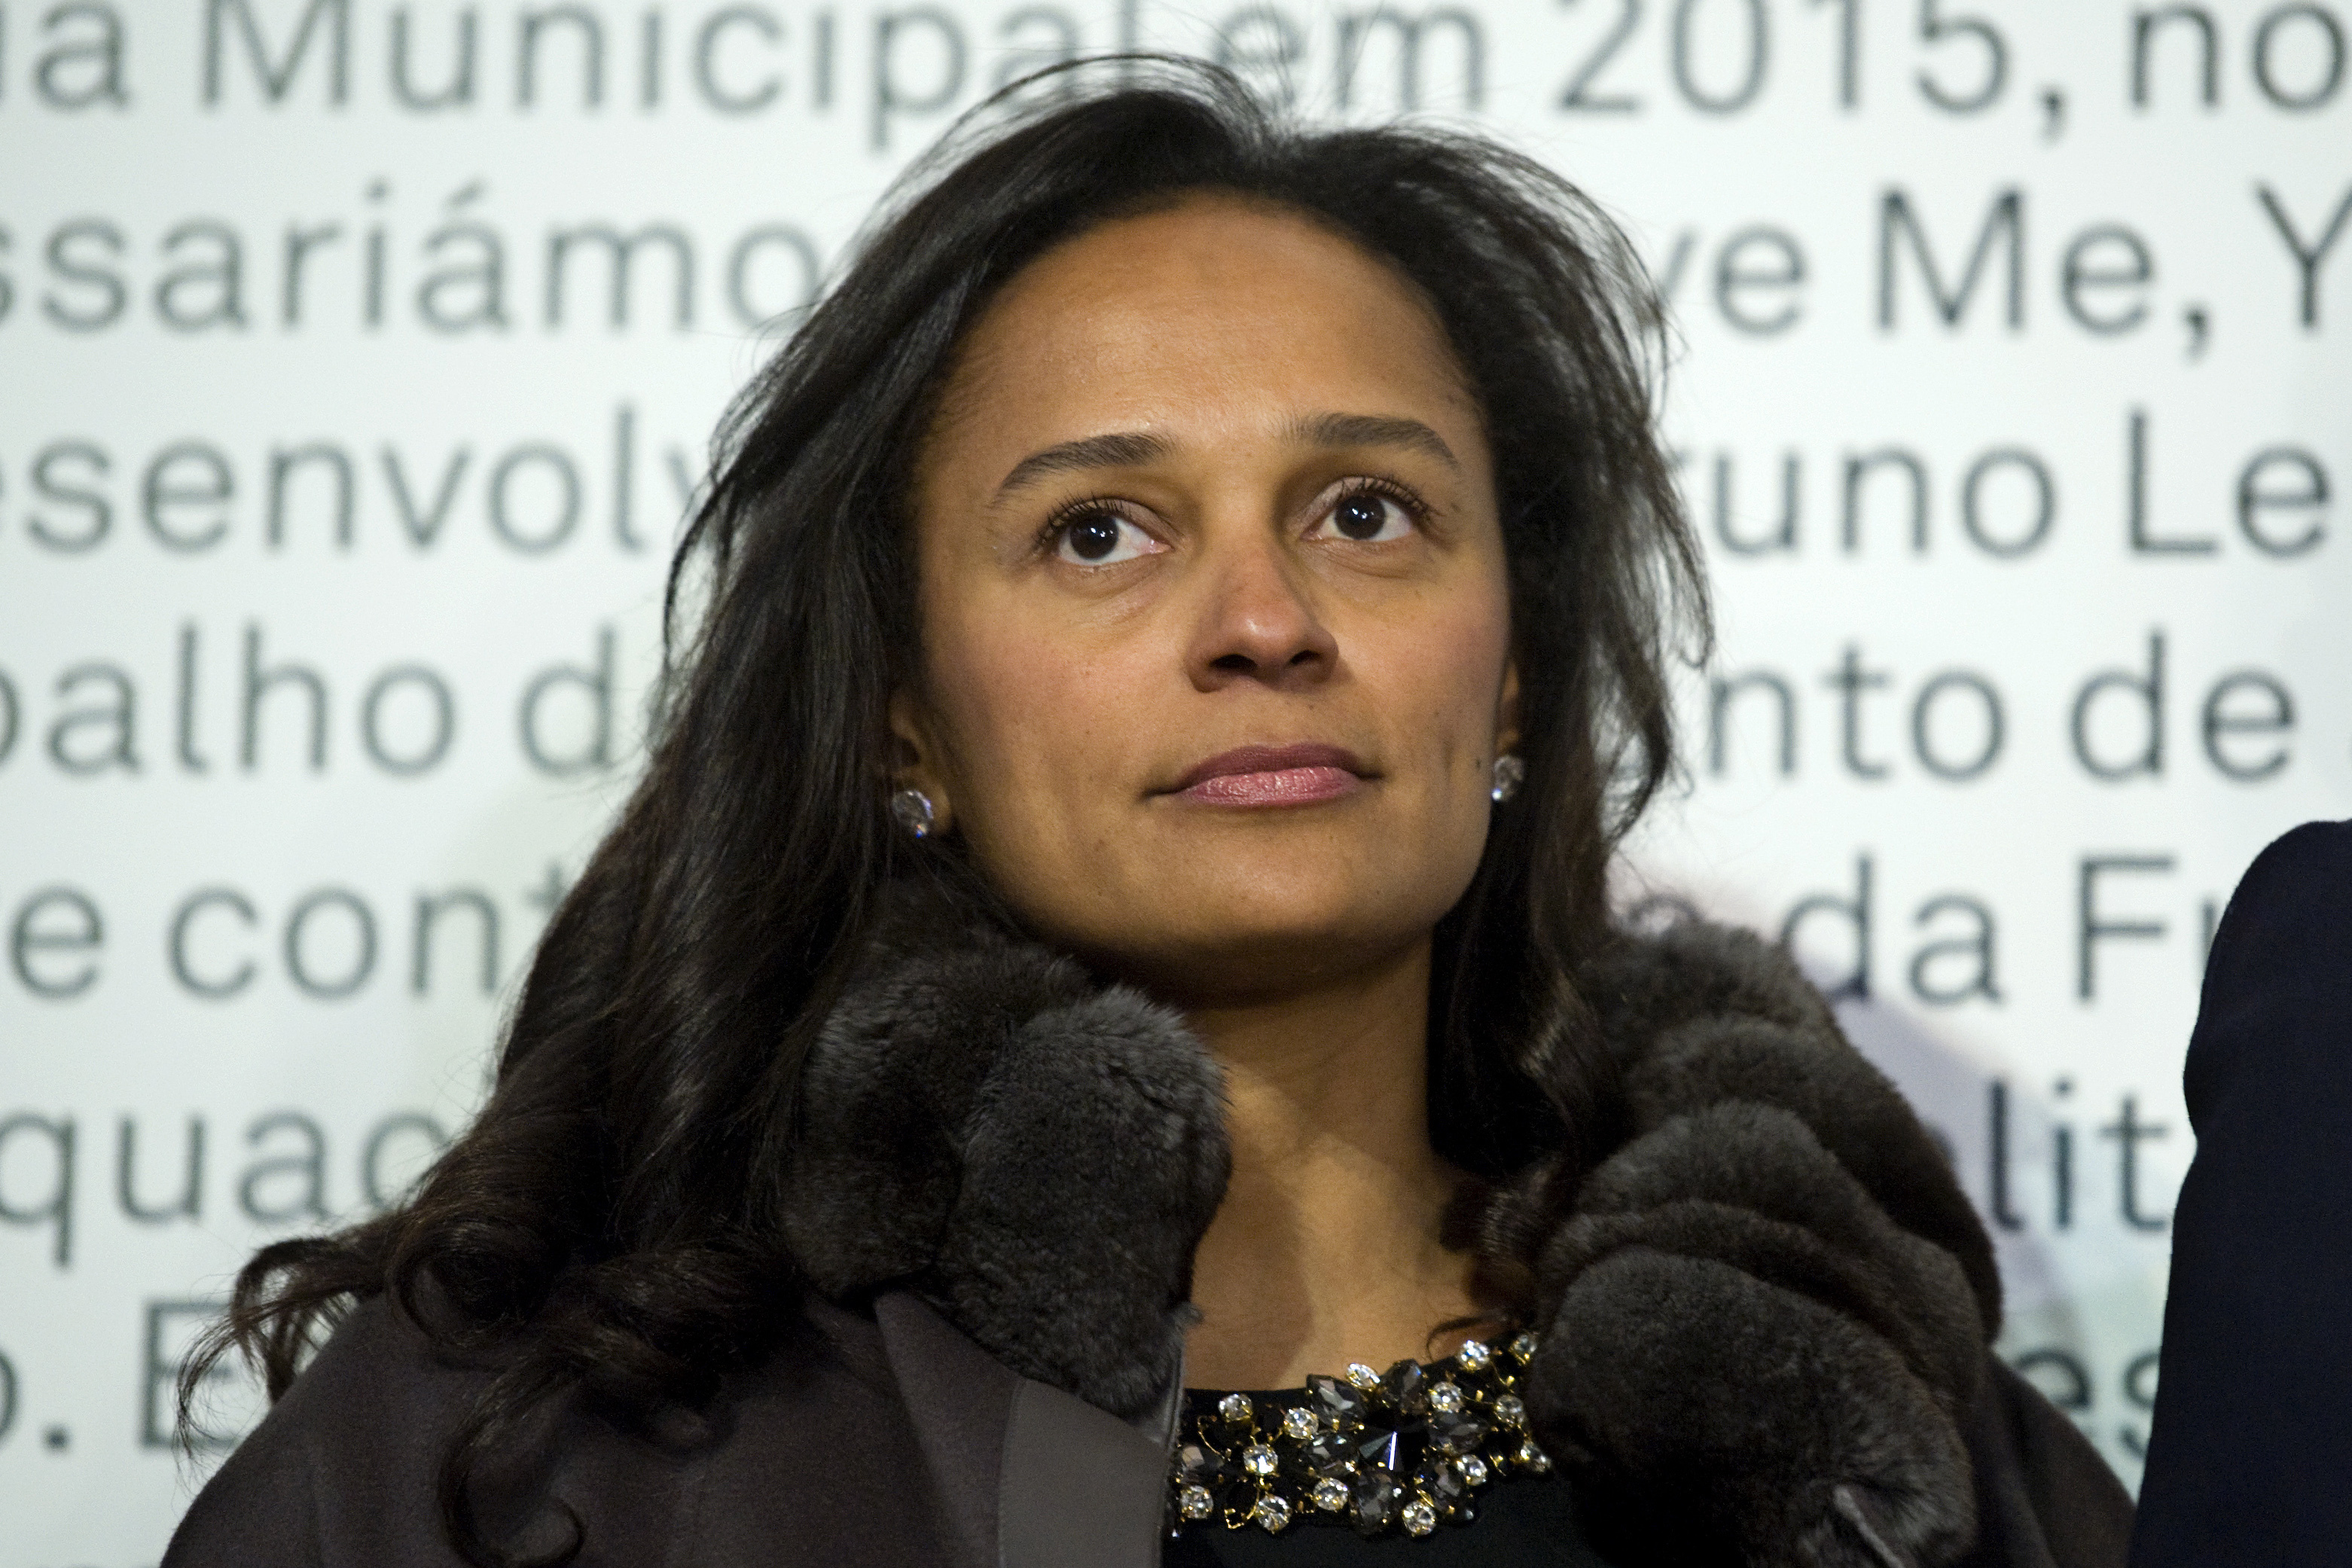 Áfricas richest woman out of Davos well before report